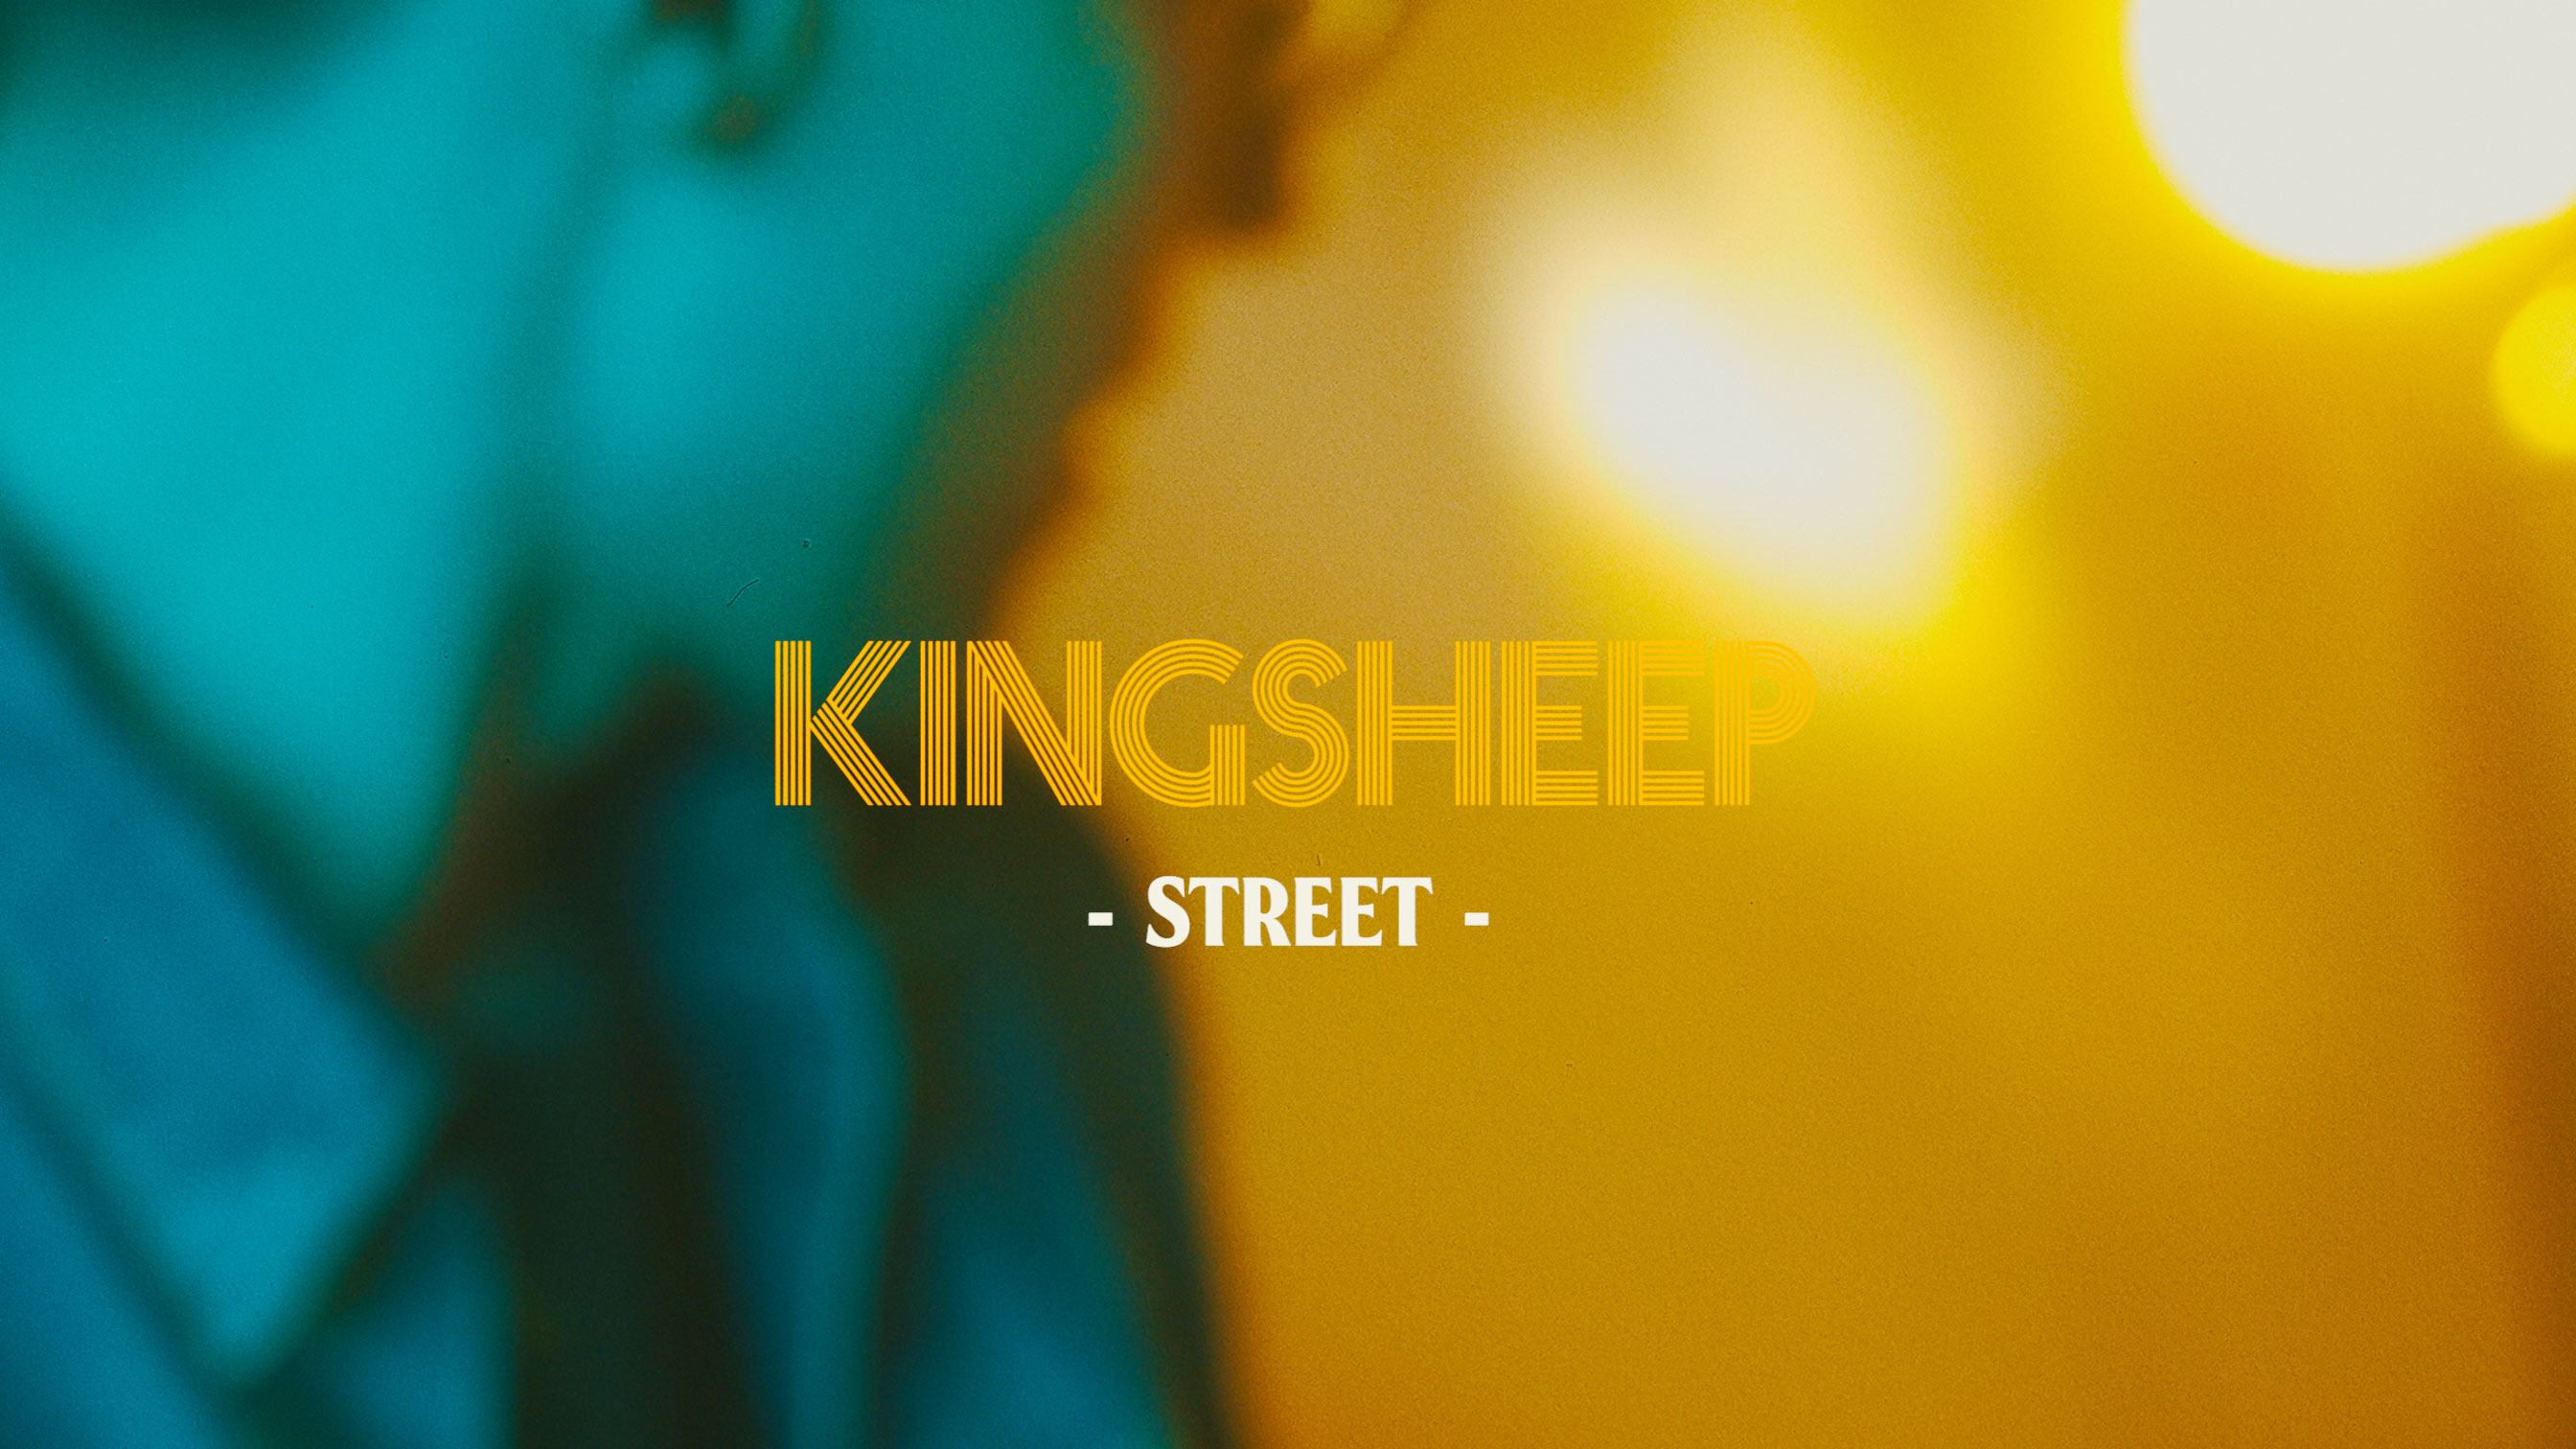 kingsheep